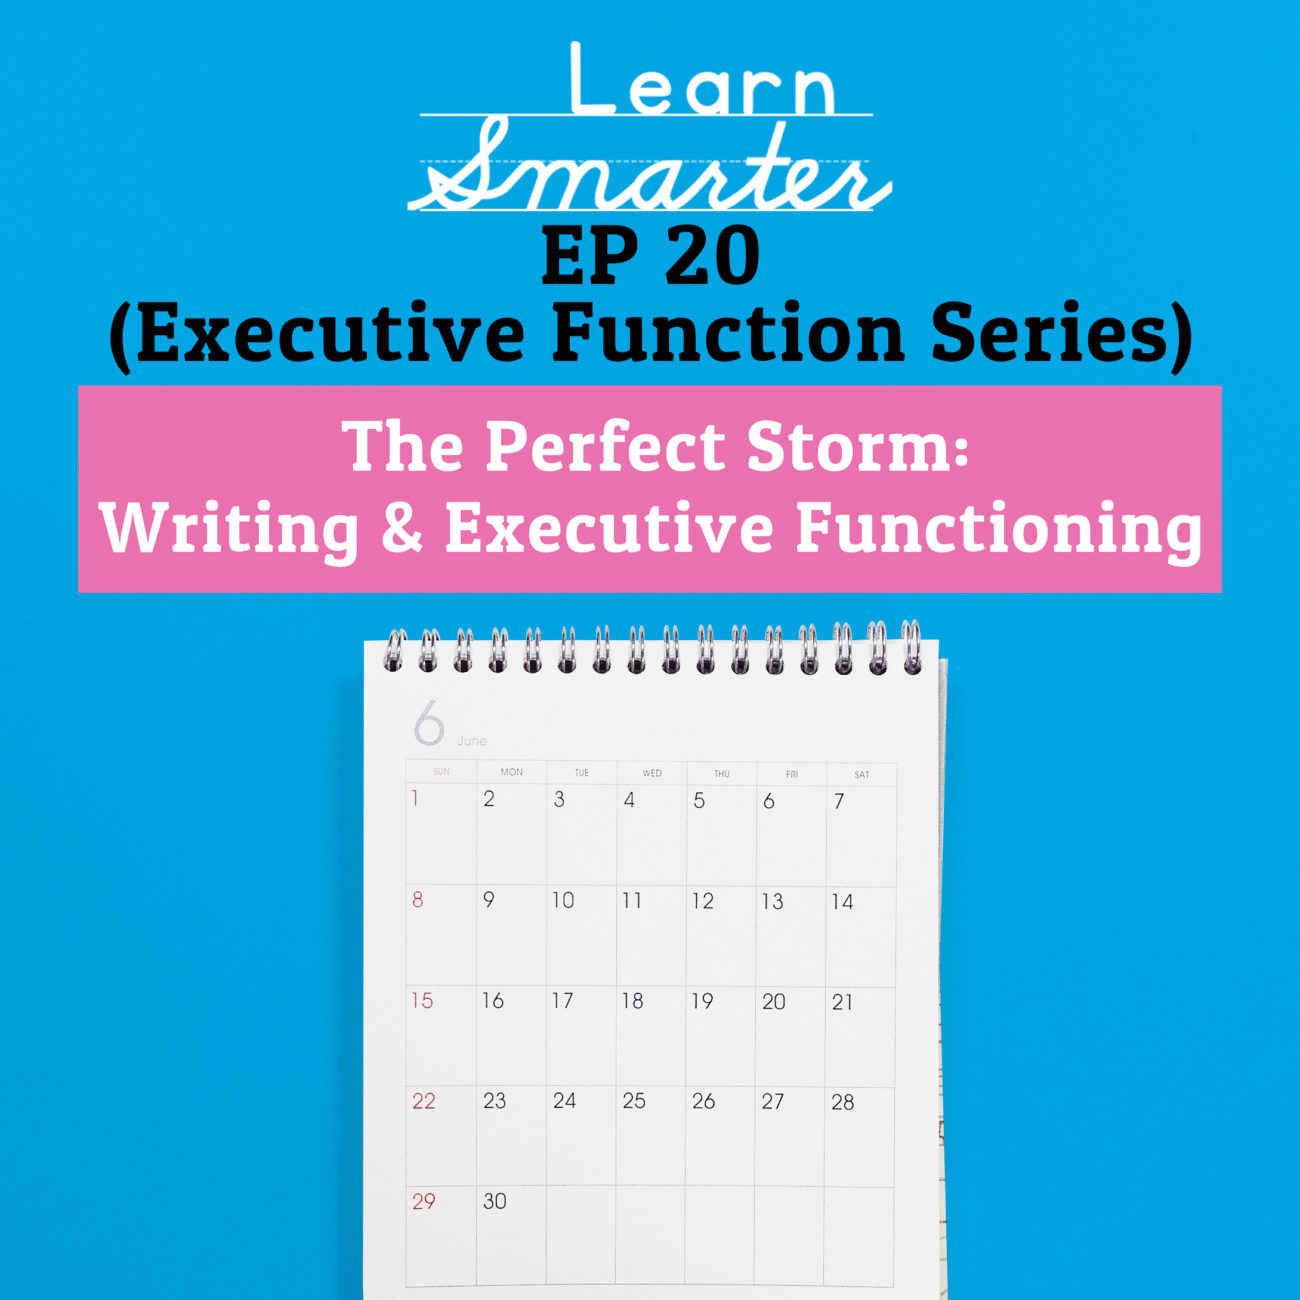 20: The Perfect Storm: Writing & Executive Functioning